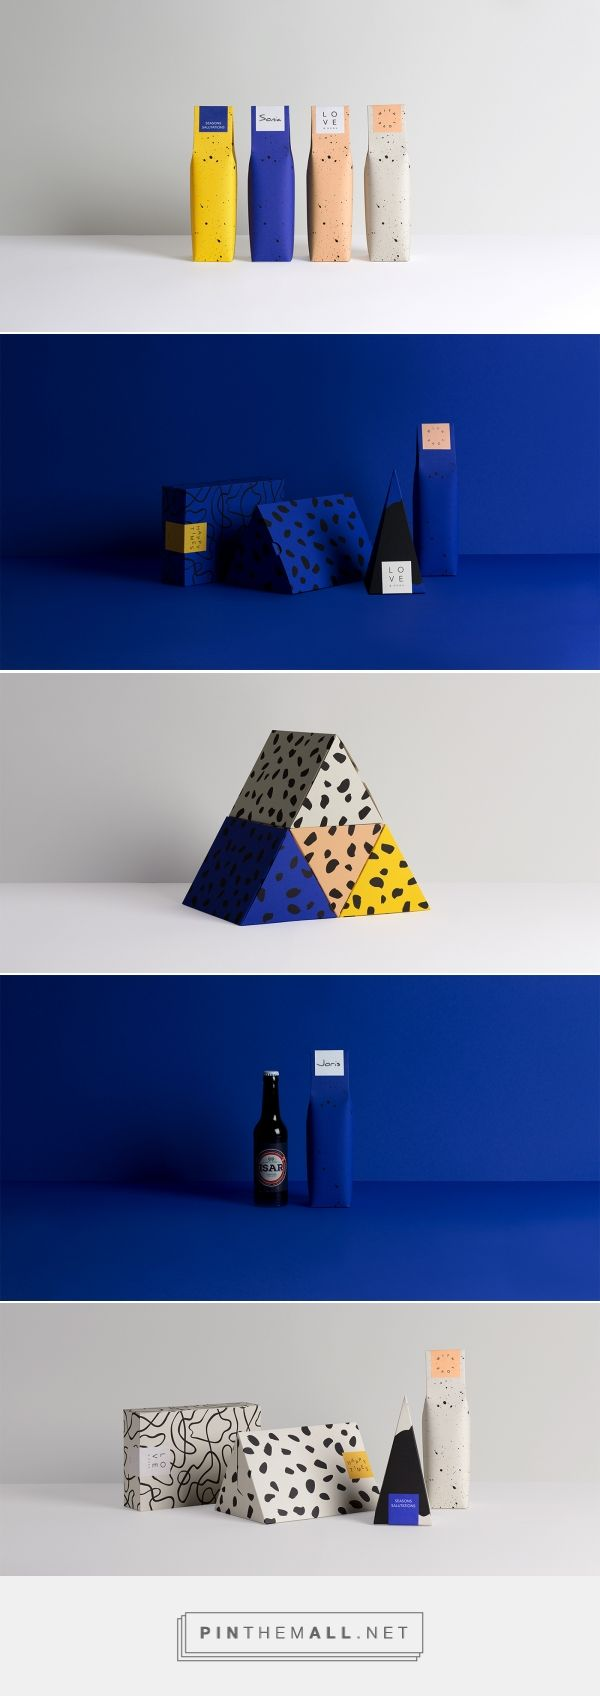 Wrappu Giftbox Packaging by Micha Kumpf | Fivestar Branding Agency – Design and Branding Agency & Curated Inspiration Gallery